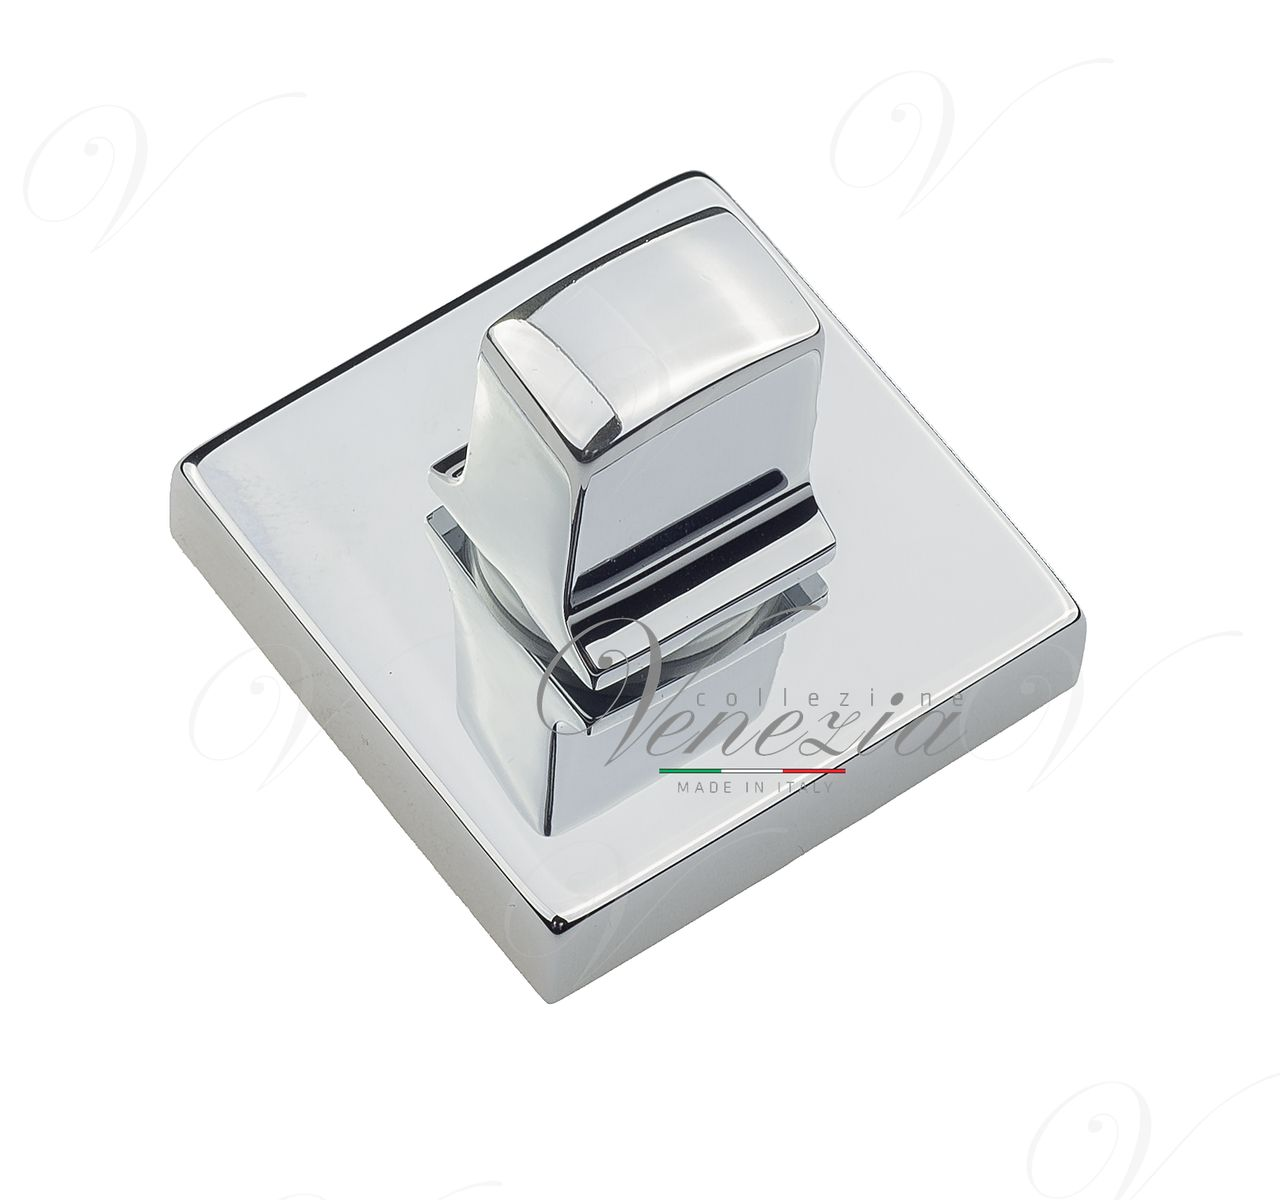 Bathroom Turn & Release Square Venezia Unique WC-20 Polished Chrome